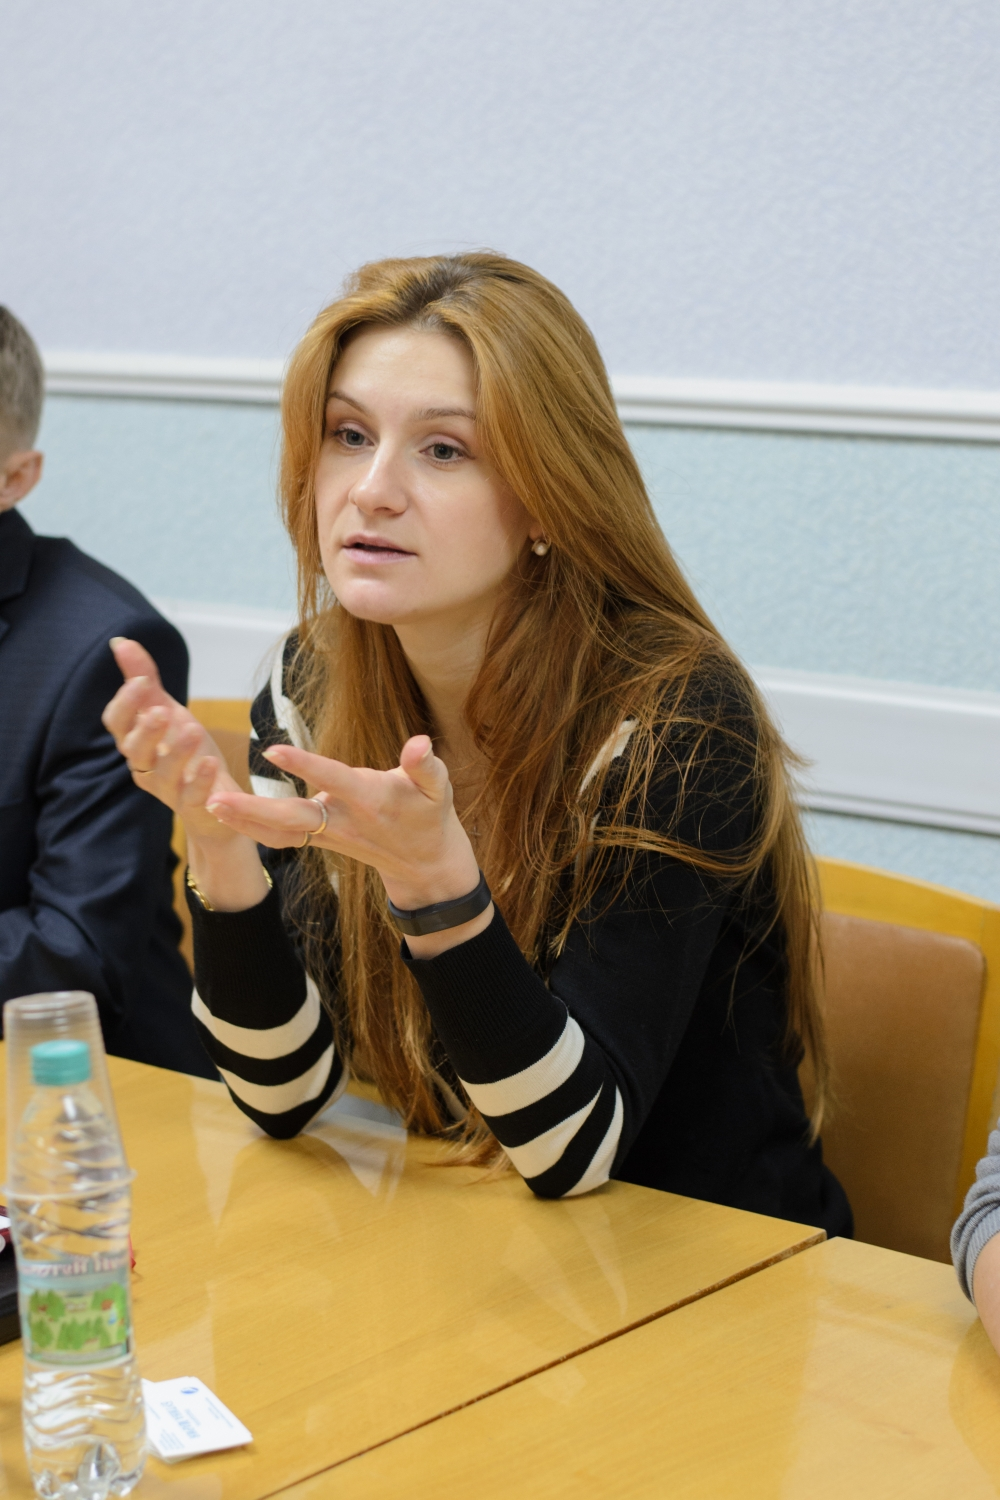 Butina's lawyers given go-ahead to subpoena for student records